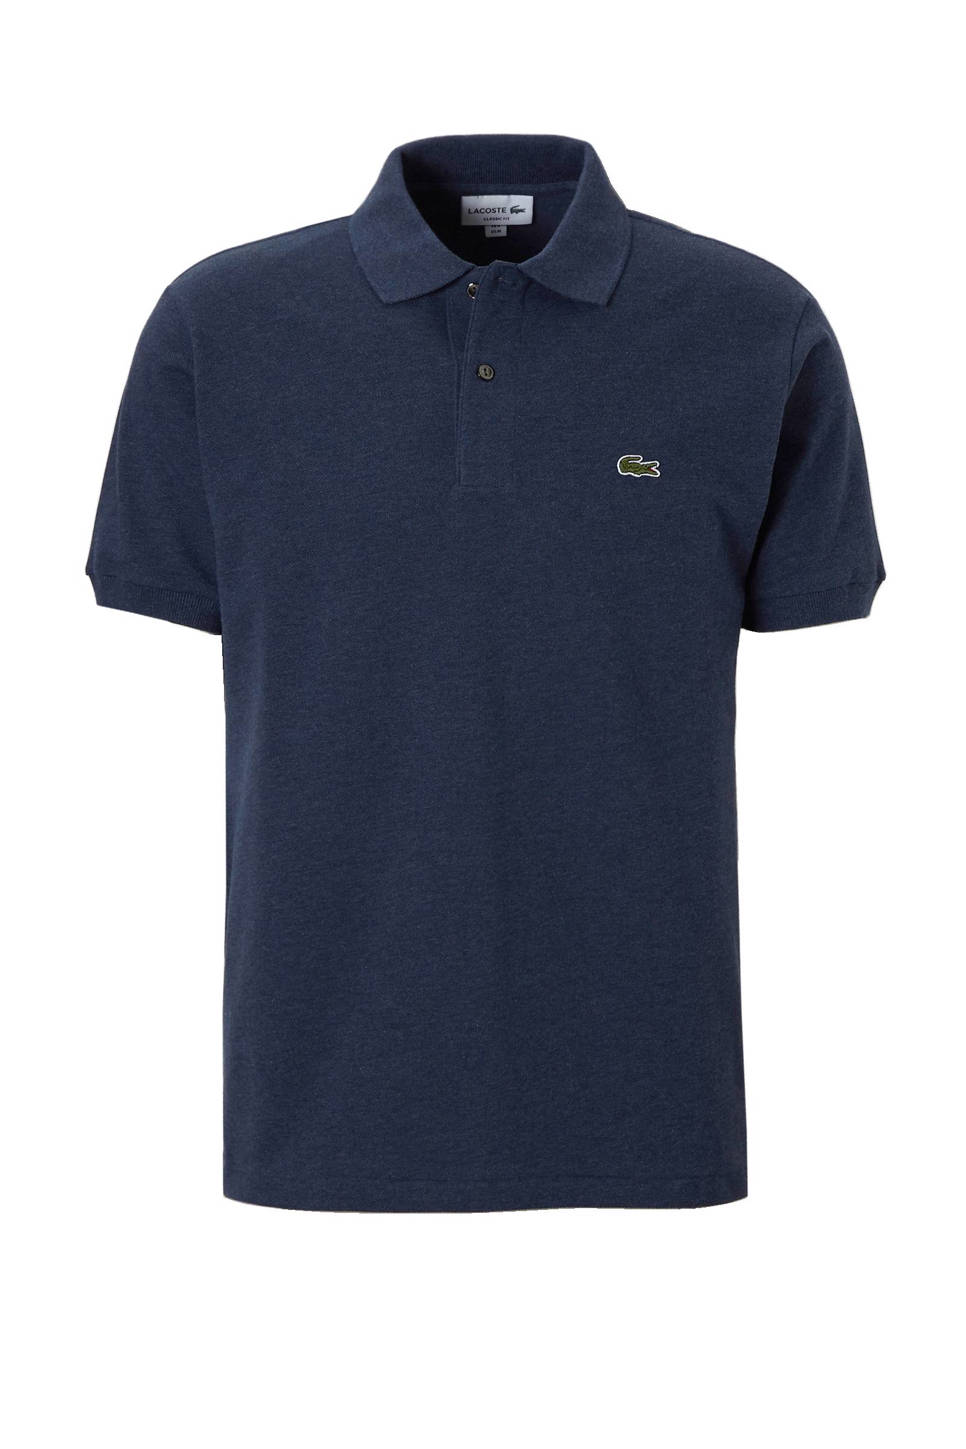 Lacoste classic fit polo, Donkerblauw melange